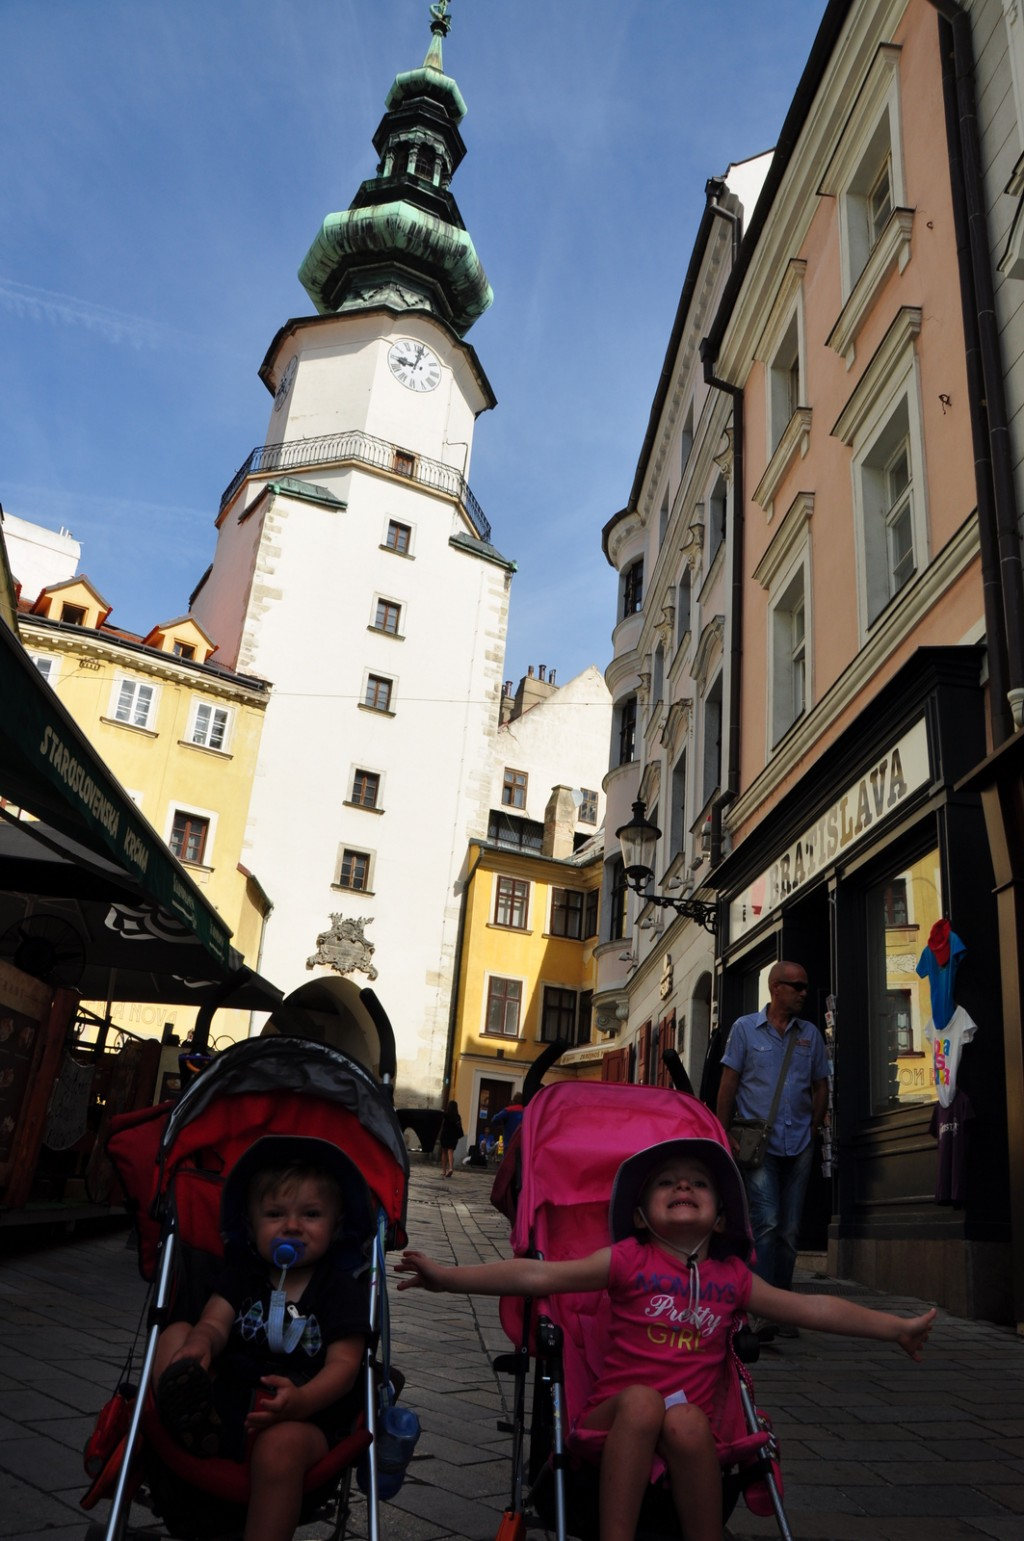 Bratislava was not a highlight of Slovakia for us.  The architecture was rather drab, and the old city didn't have that much to see.  It was a good place to pick up souvenirs though!